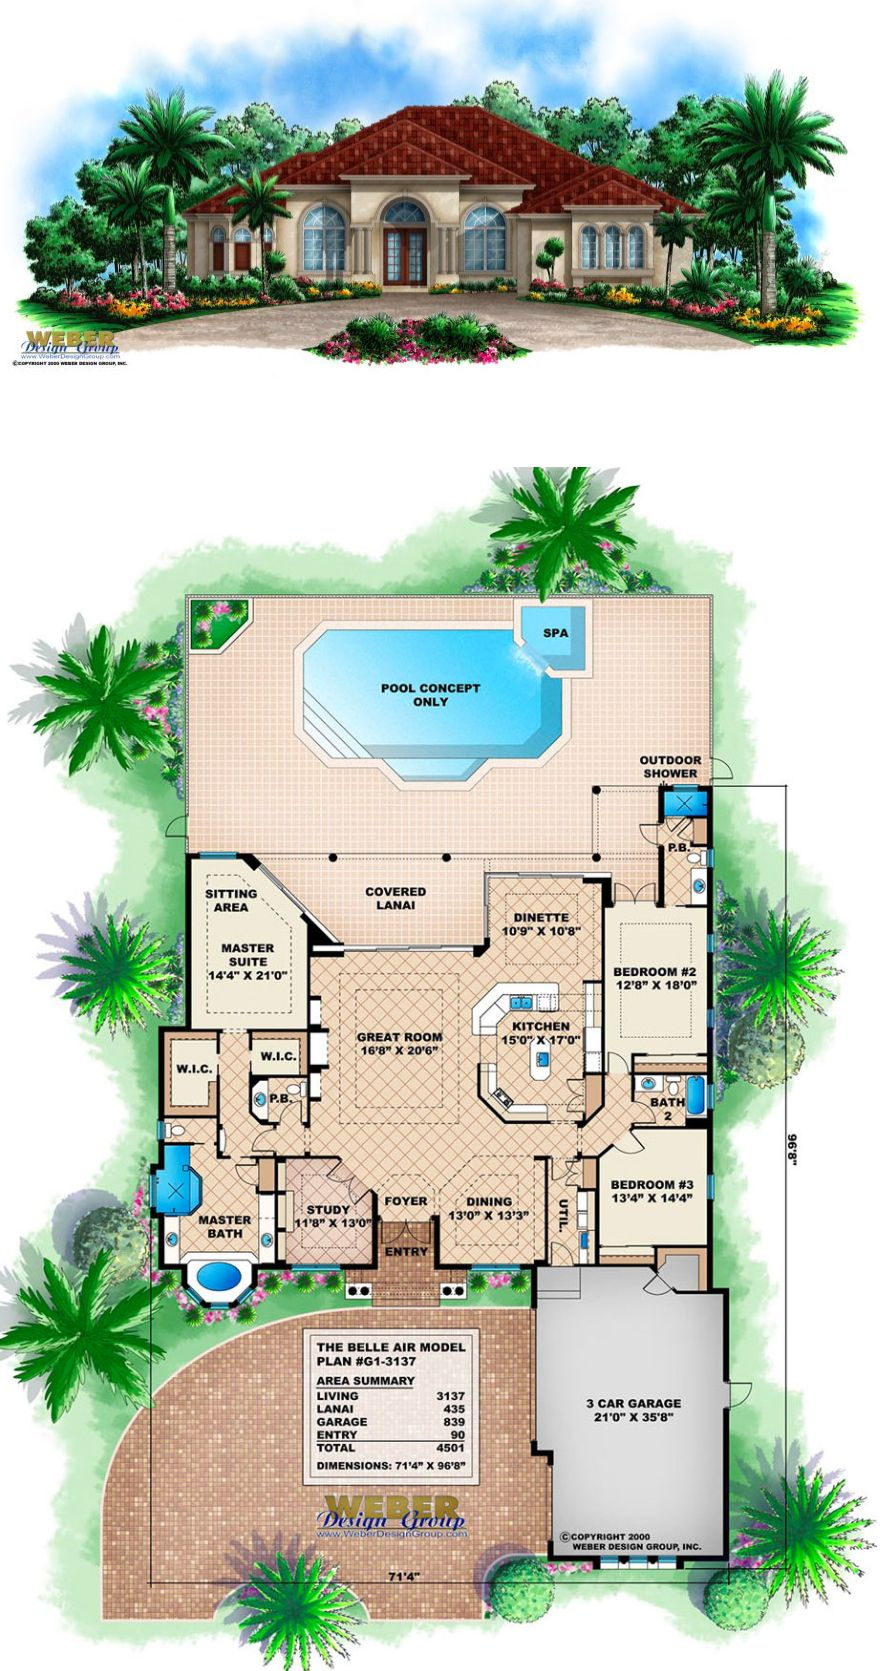 Mediterranean House Plan 1 Story Tuscan Style Waterfront Floor Plan Mediterranean House Plans Beach House Plans Mediterranean House Plan